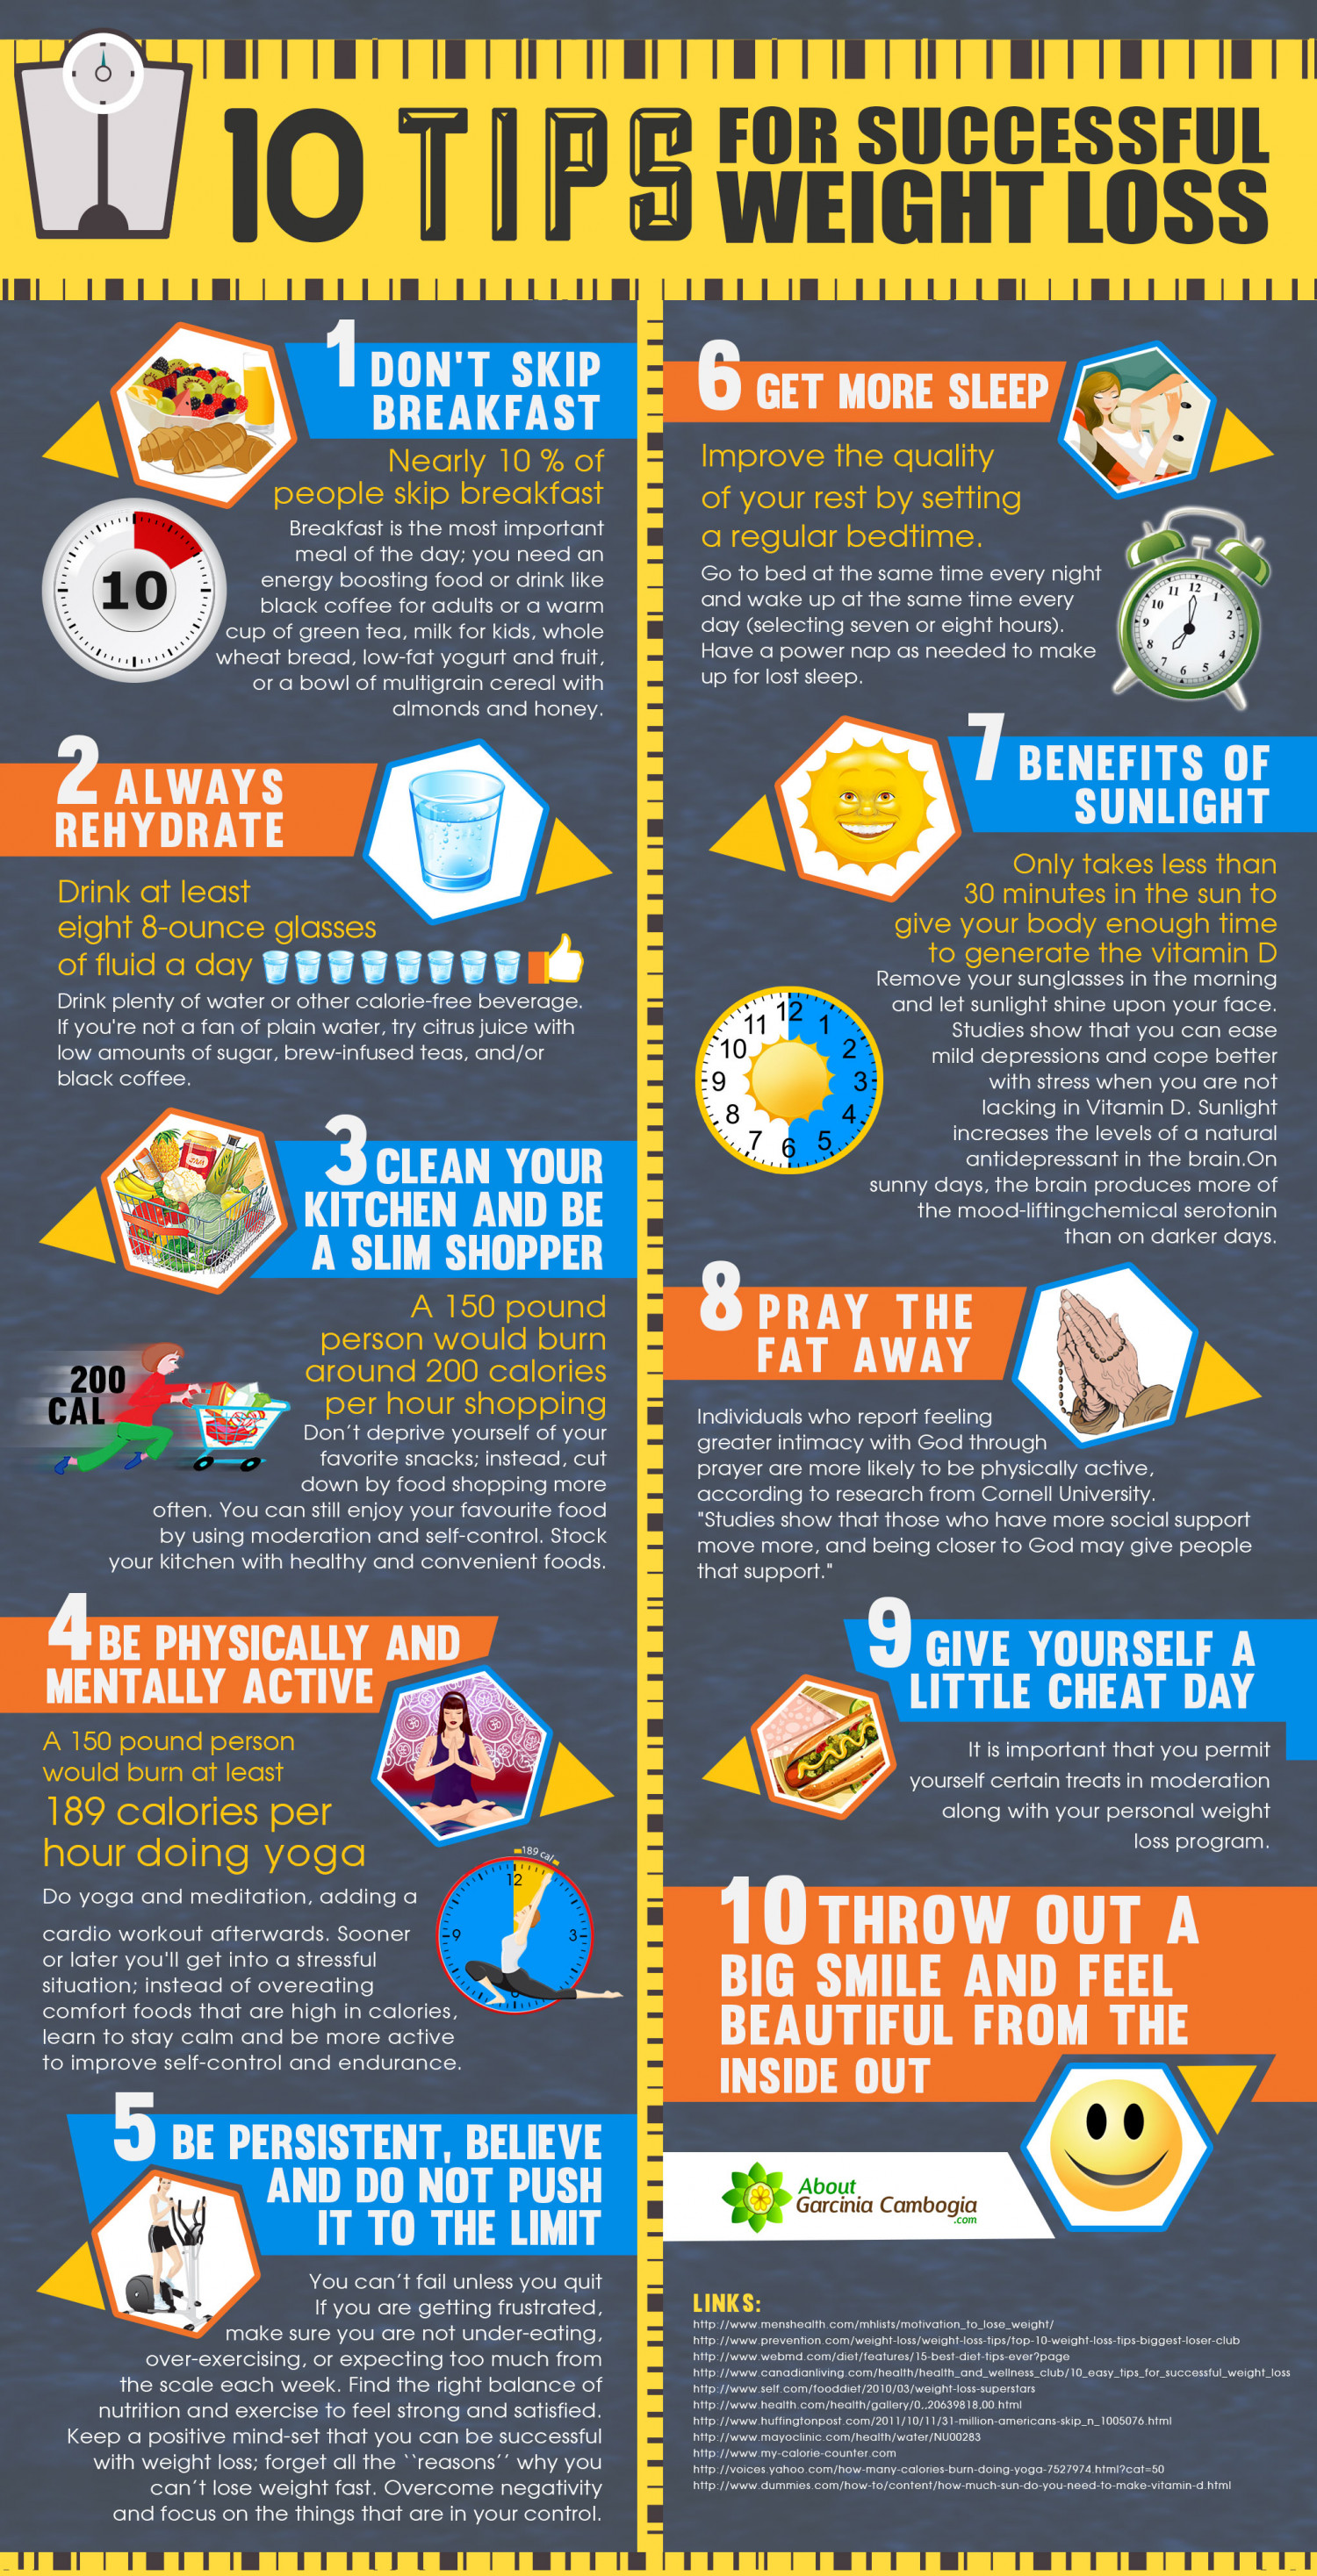 Ten Tips for Succesful Weight Loss Infographic